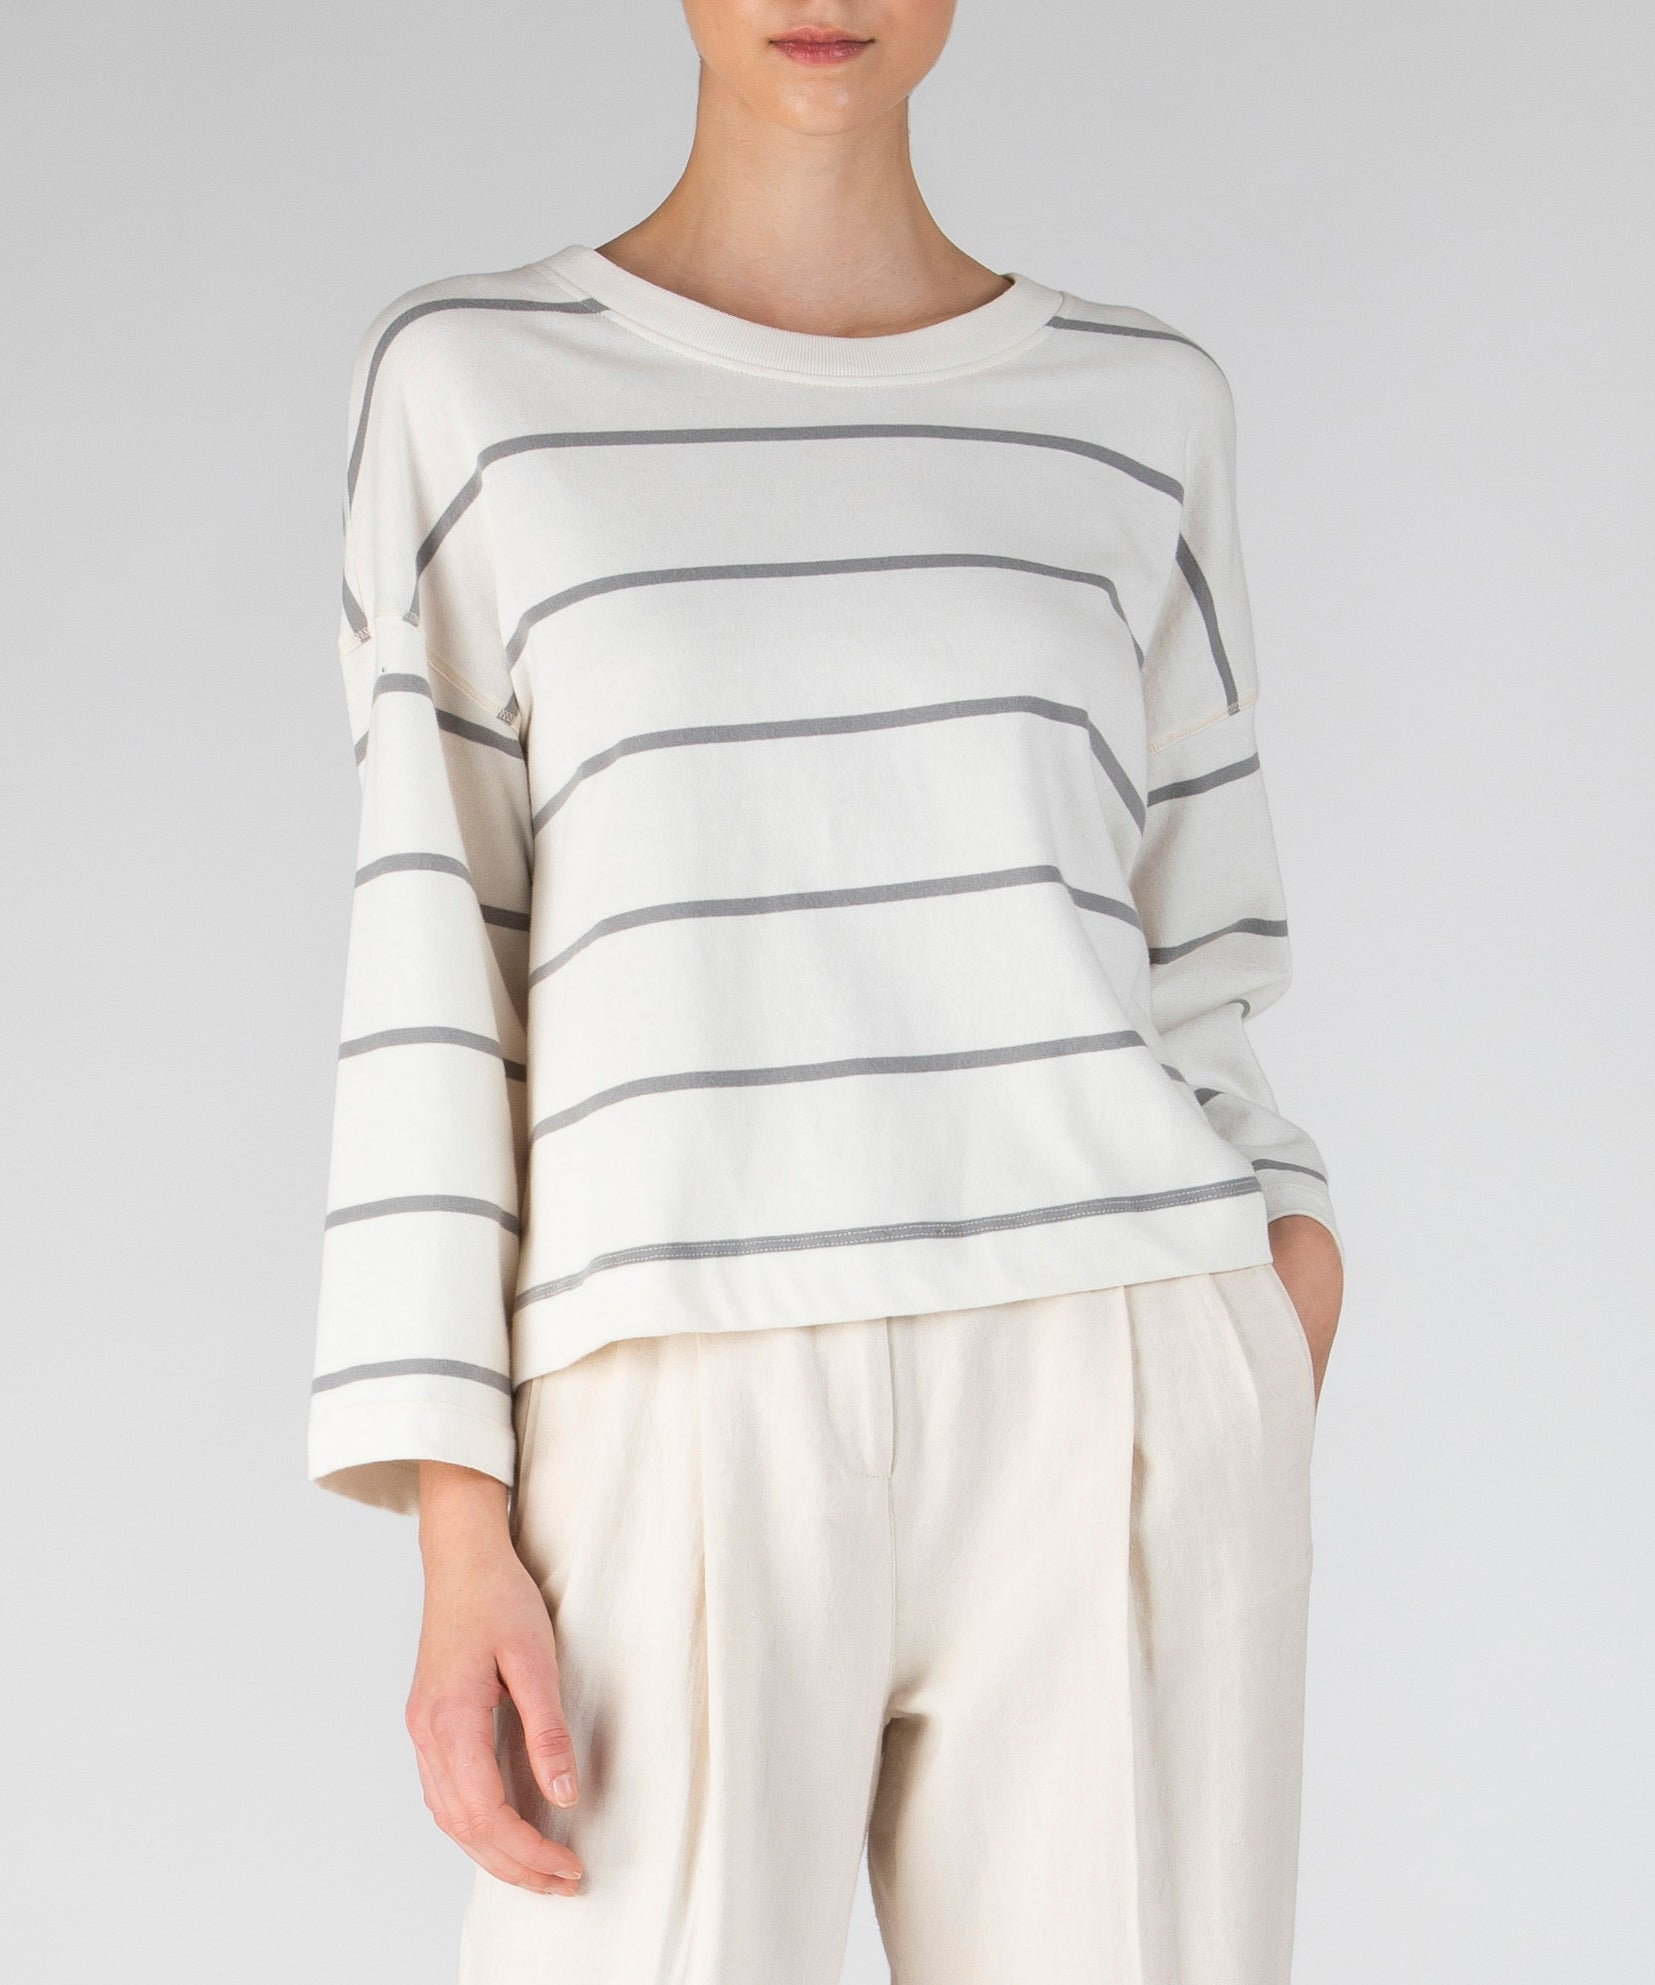 Chalk and Smoke Stripe Plaited Jersey Sweatshirt - Women's Luxe Cotton Loungewear by ATM Anthony Thomas Melillo